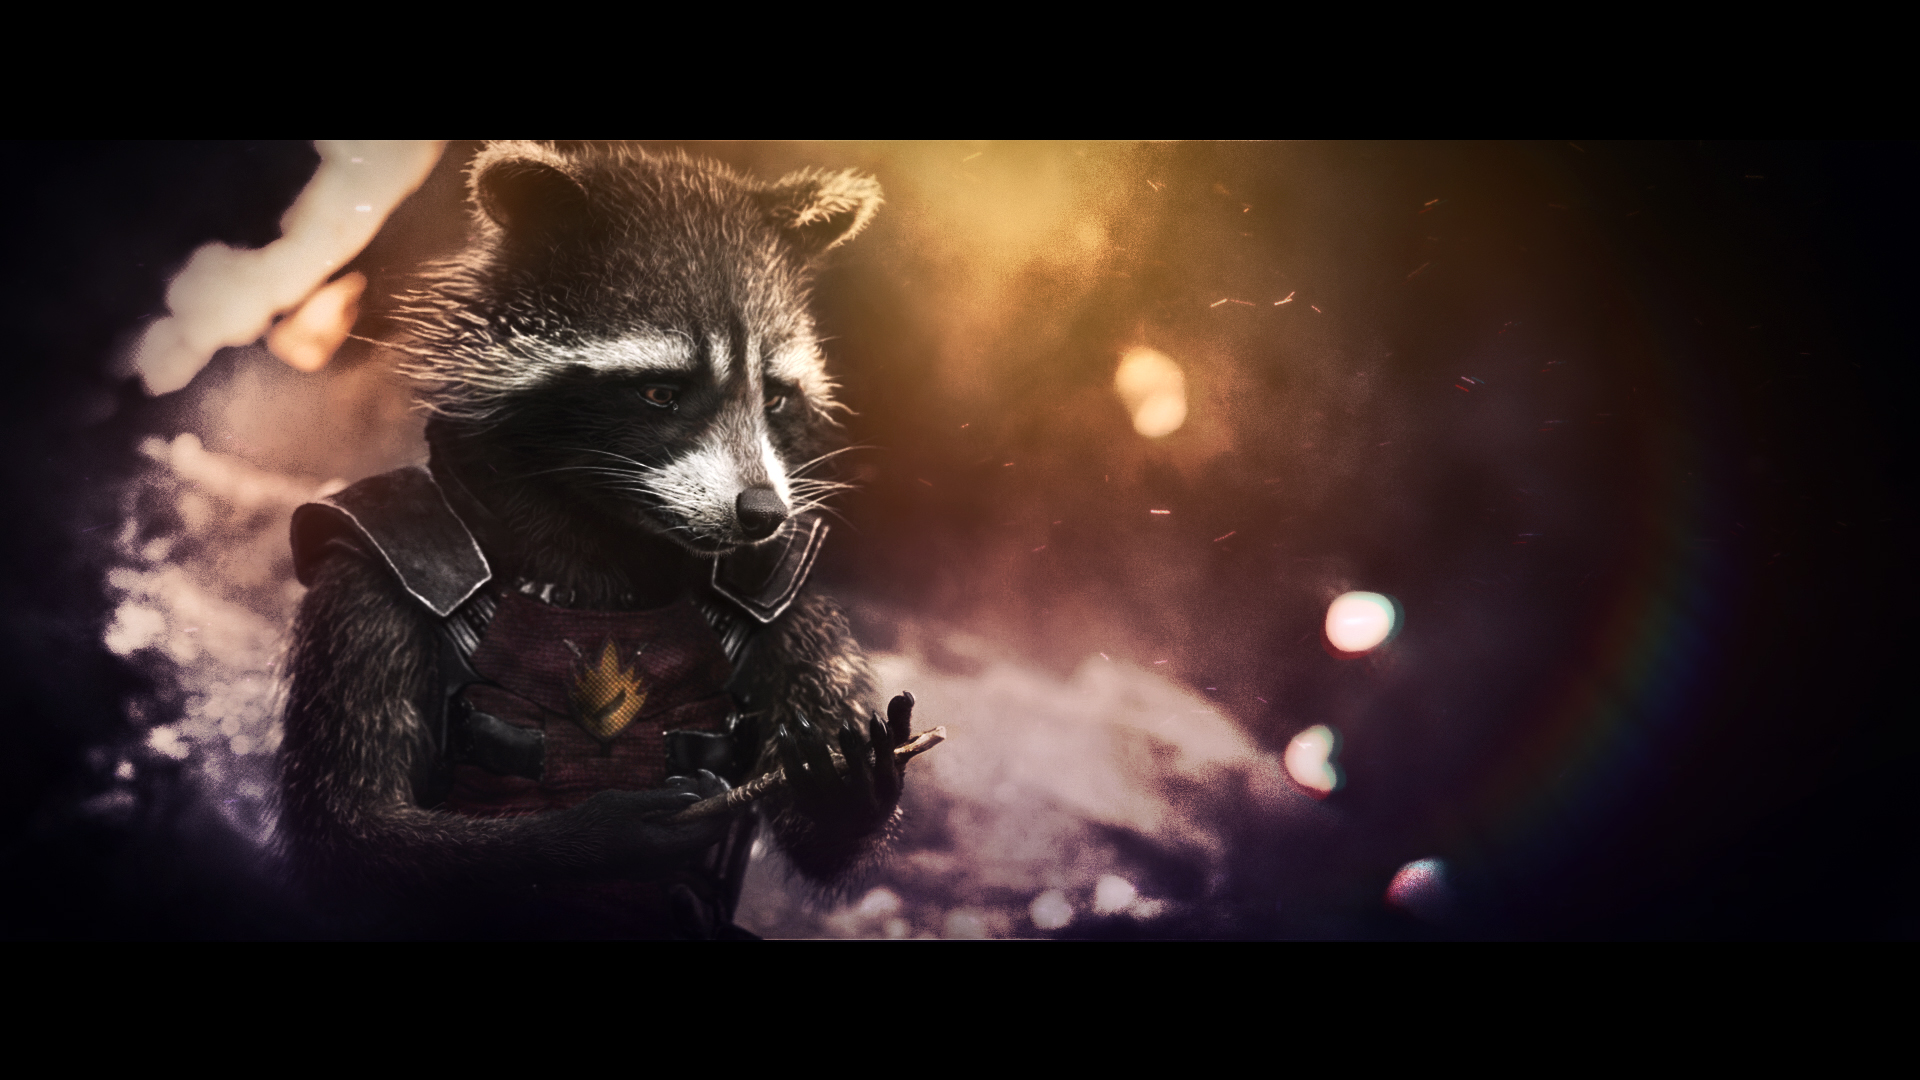 Rocket Raccoon Iphone Wallpaper Download